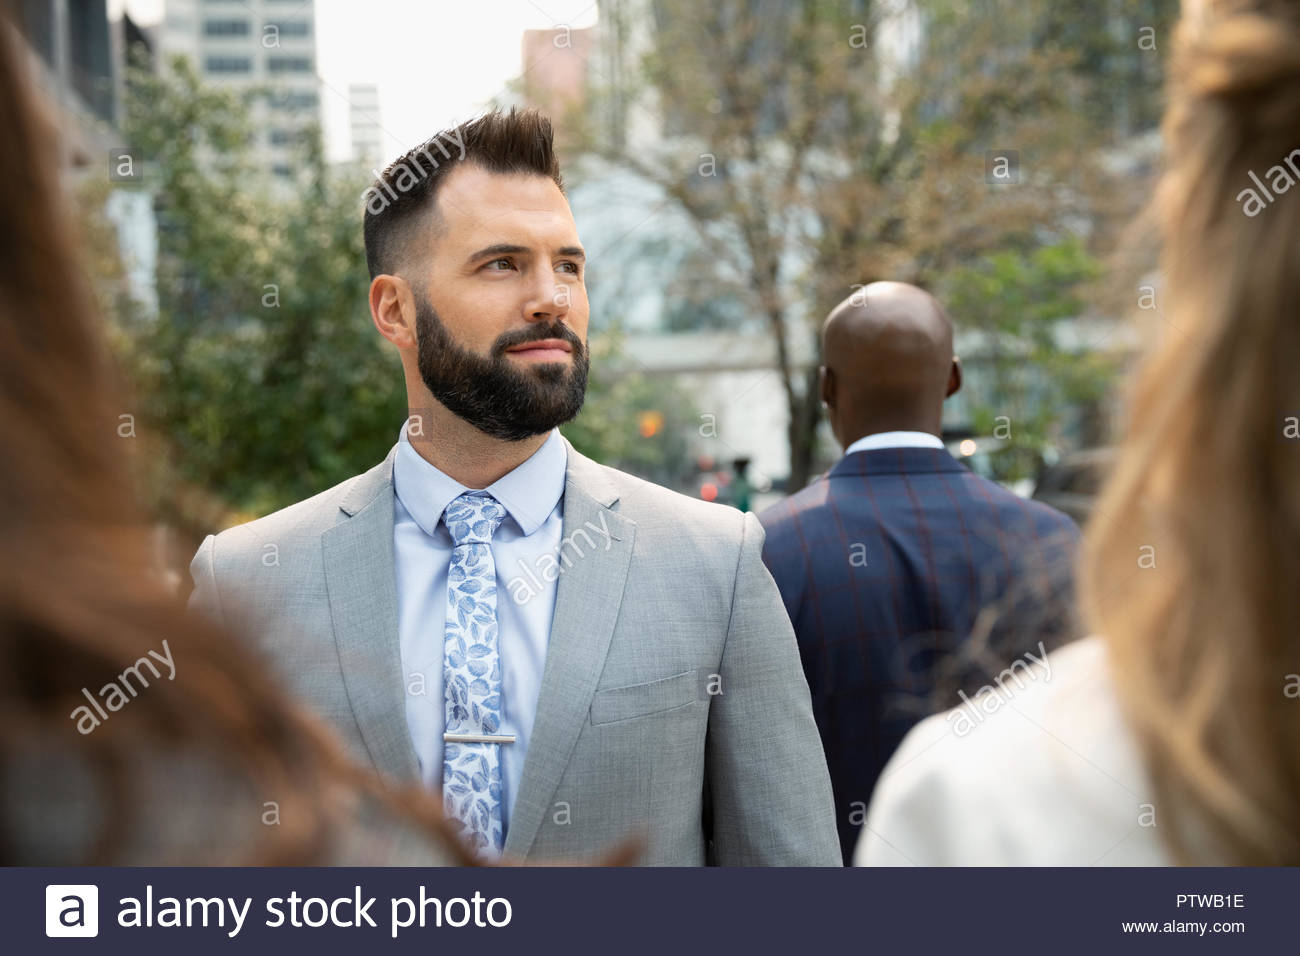 Portrait confident, ambitious businessman on urban sidewalk - Stock Image